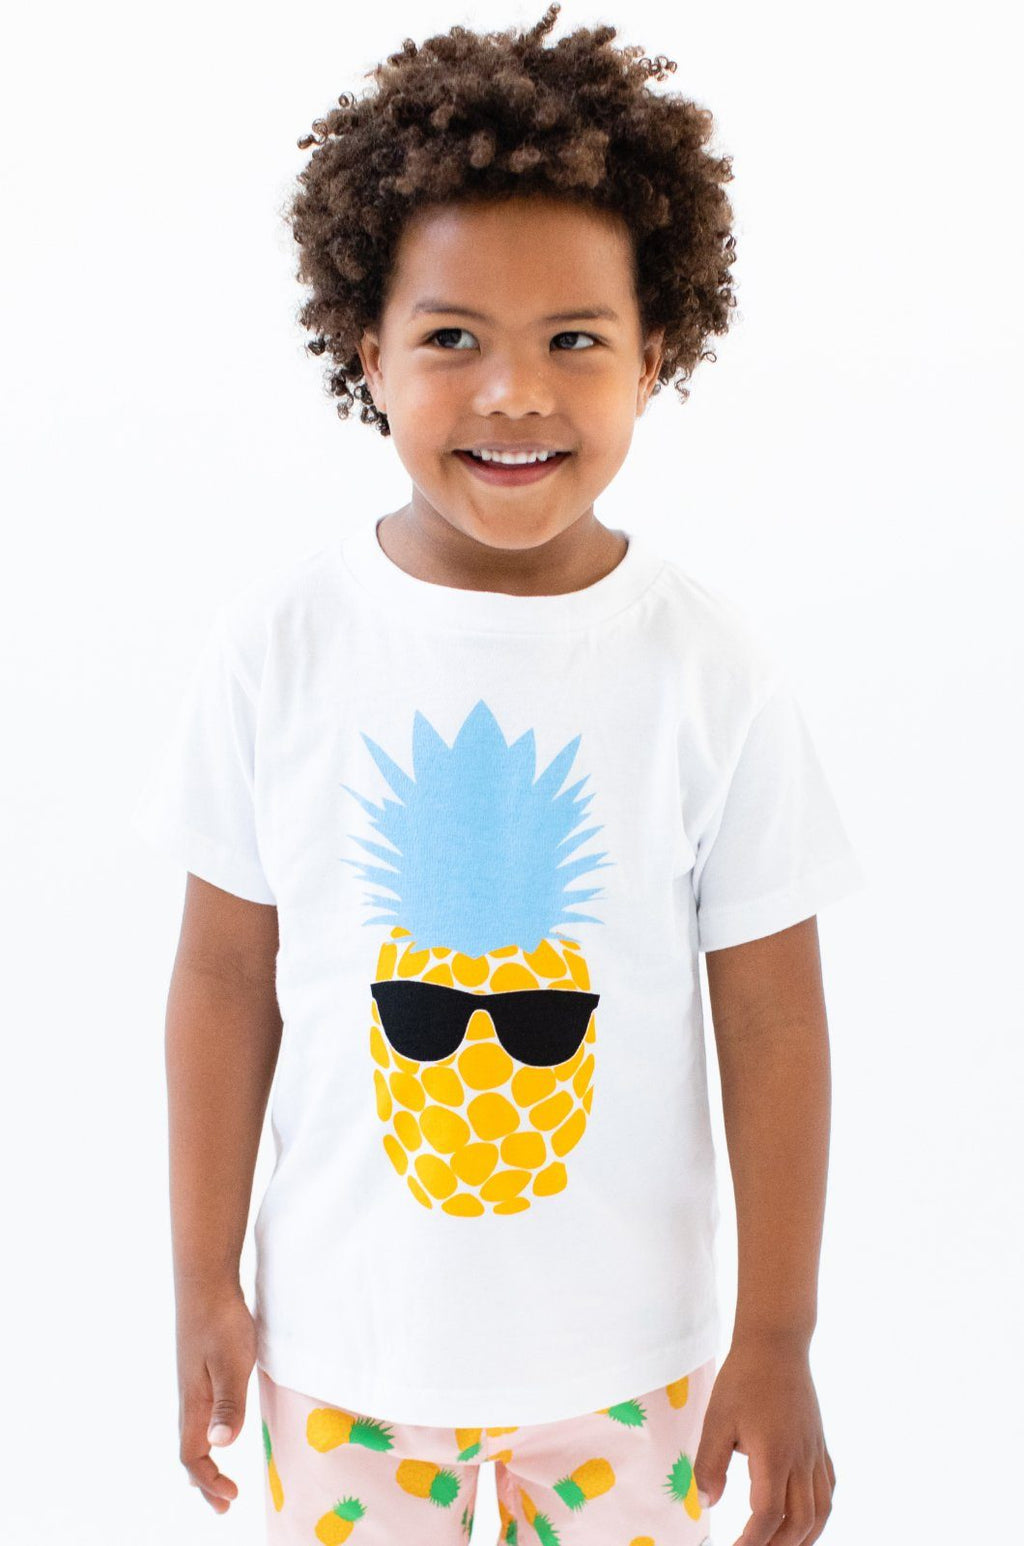 Cool Kids Tee Kids Tees ambsn